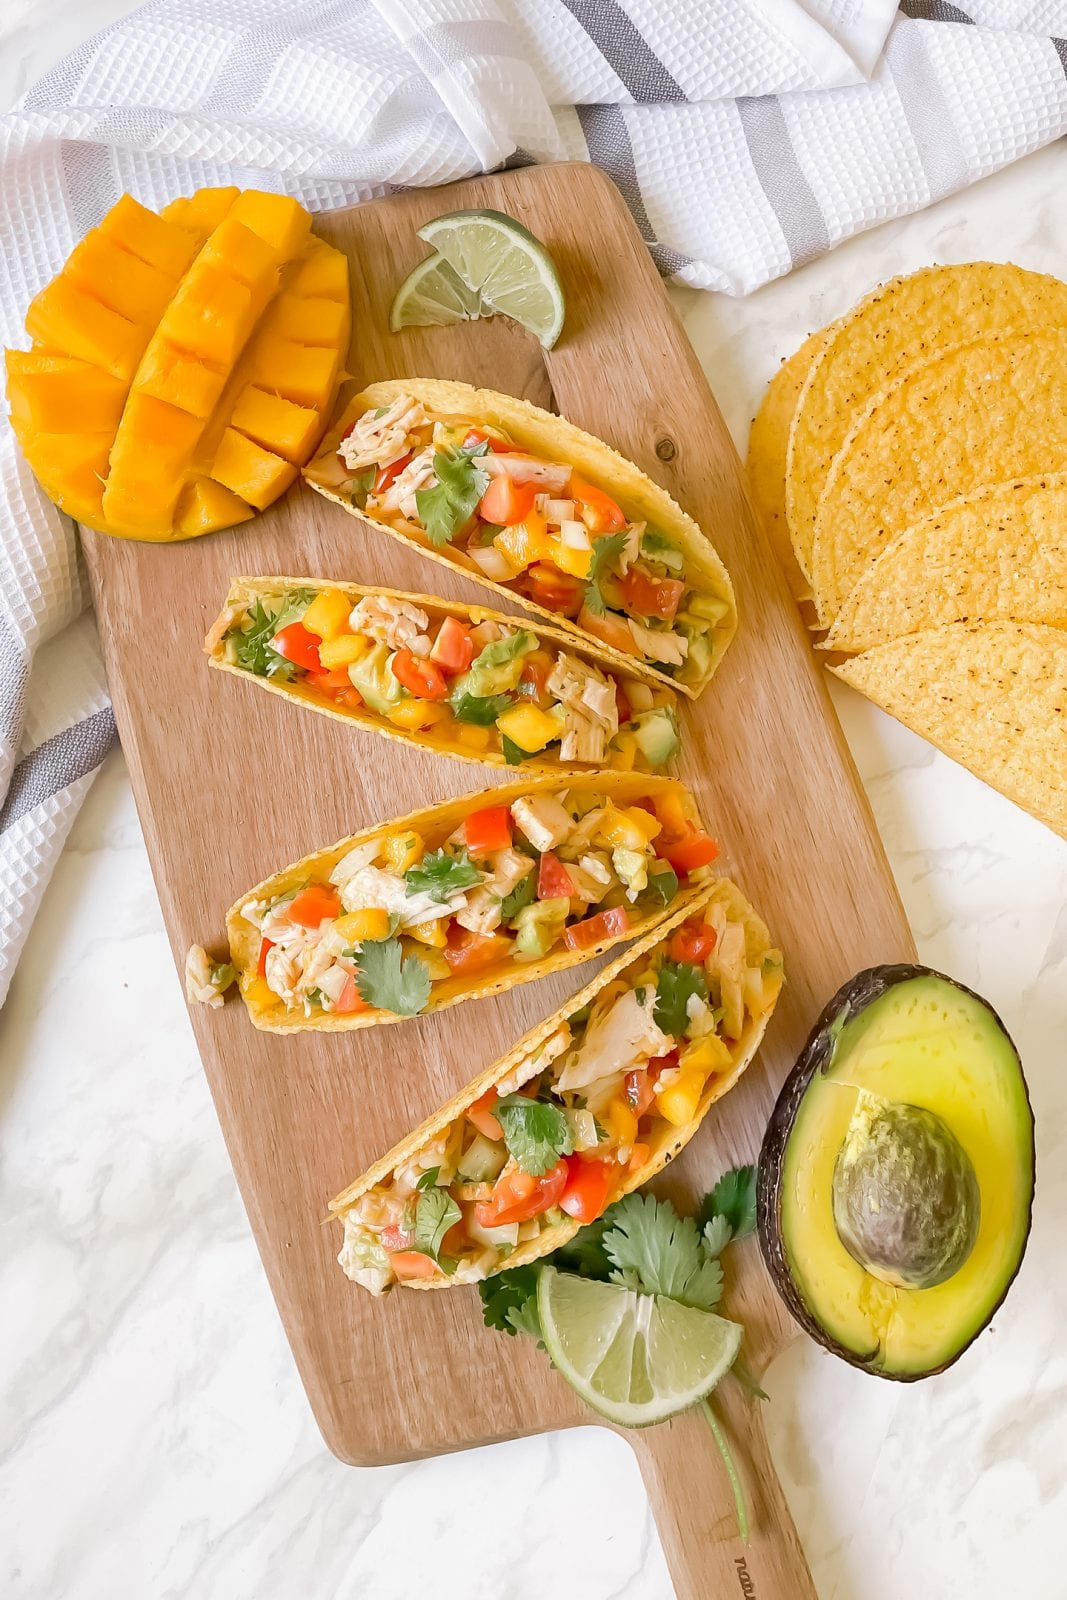 Make this turkey tacos recipe with mango avocado salsa in under 15 minutes. This easy, healthy and delicious recipe doesn't require any cooking and will be a hit with the family. Get the full recipe on yesmissy.com